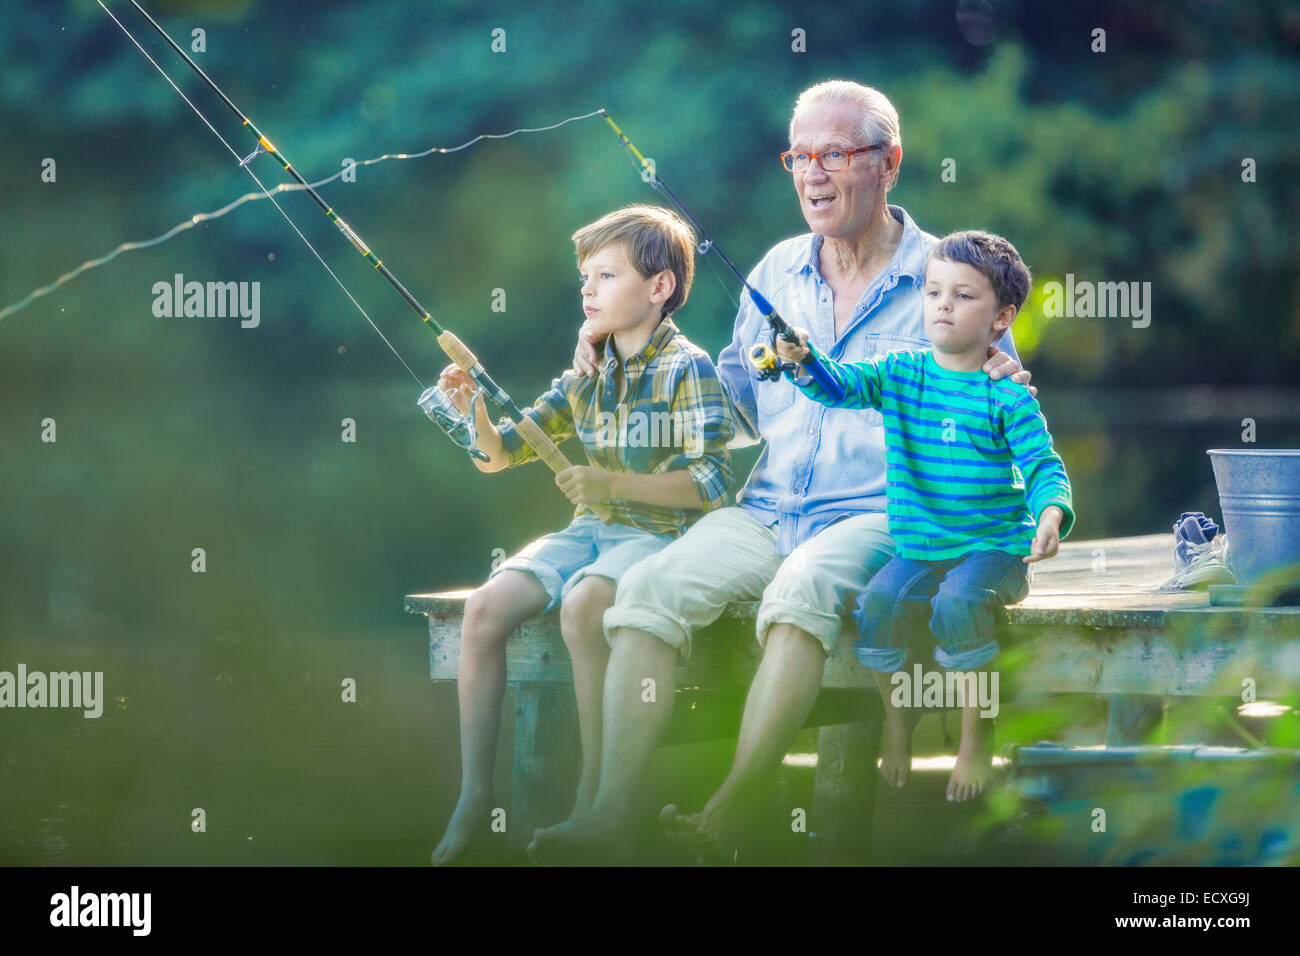 Grandfather and grandsons fishing in lake - Stock Image